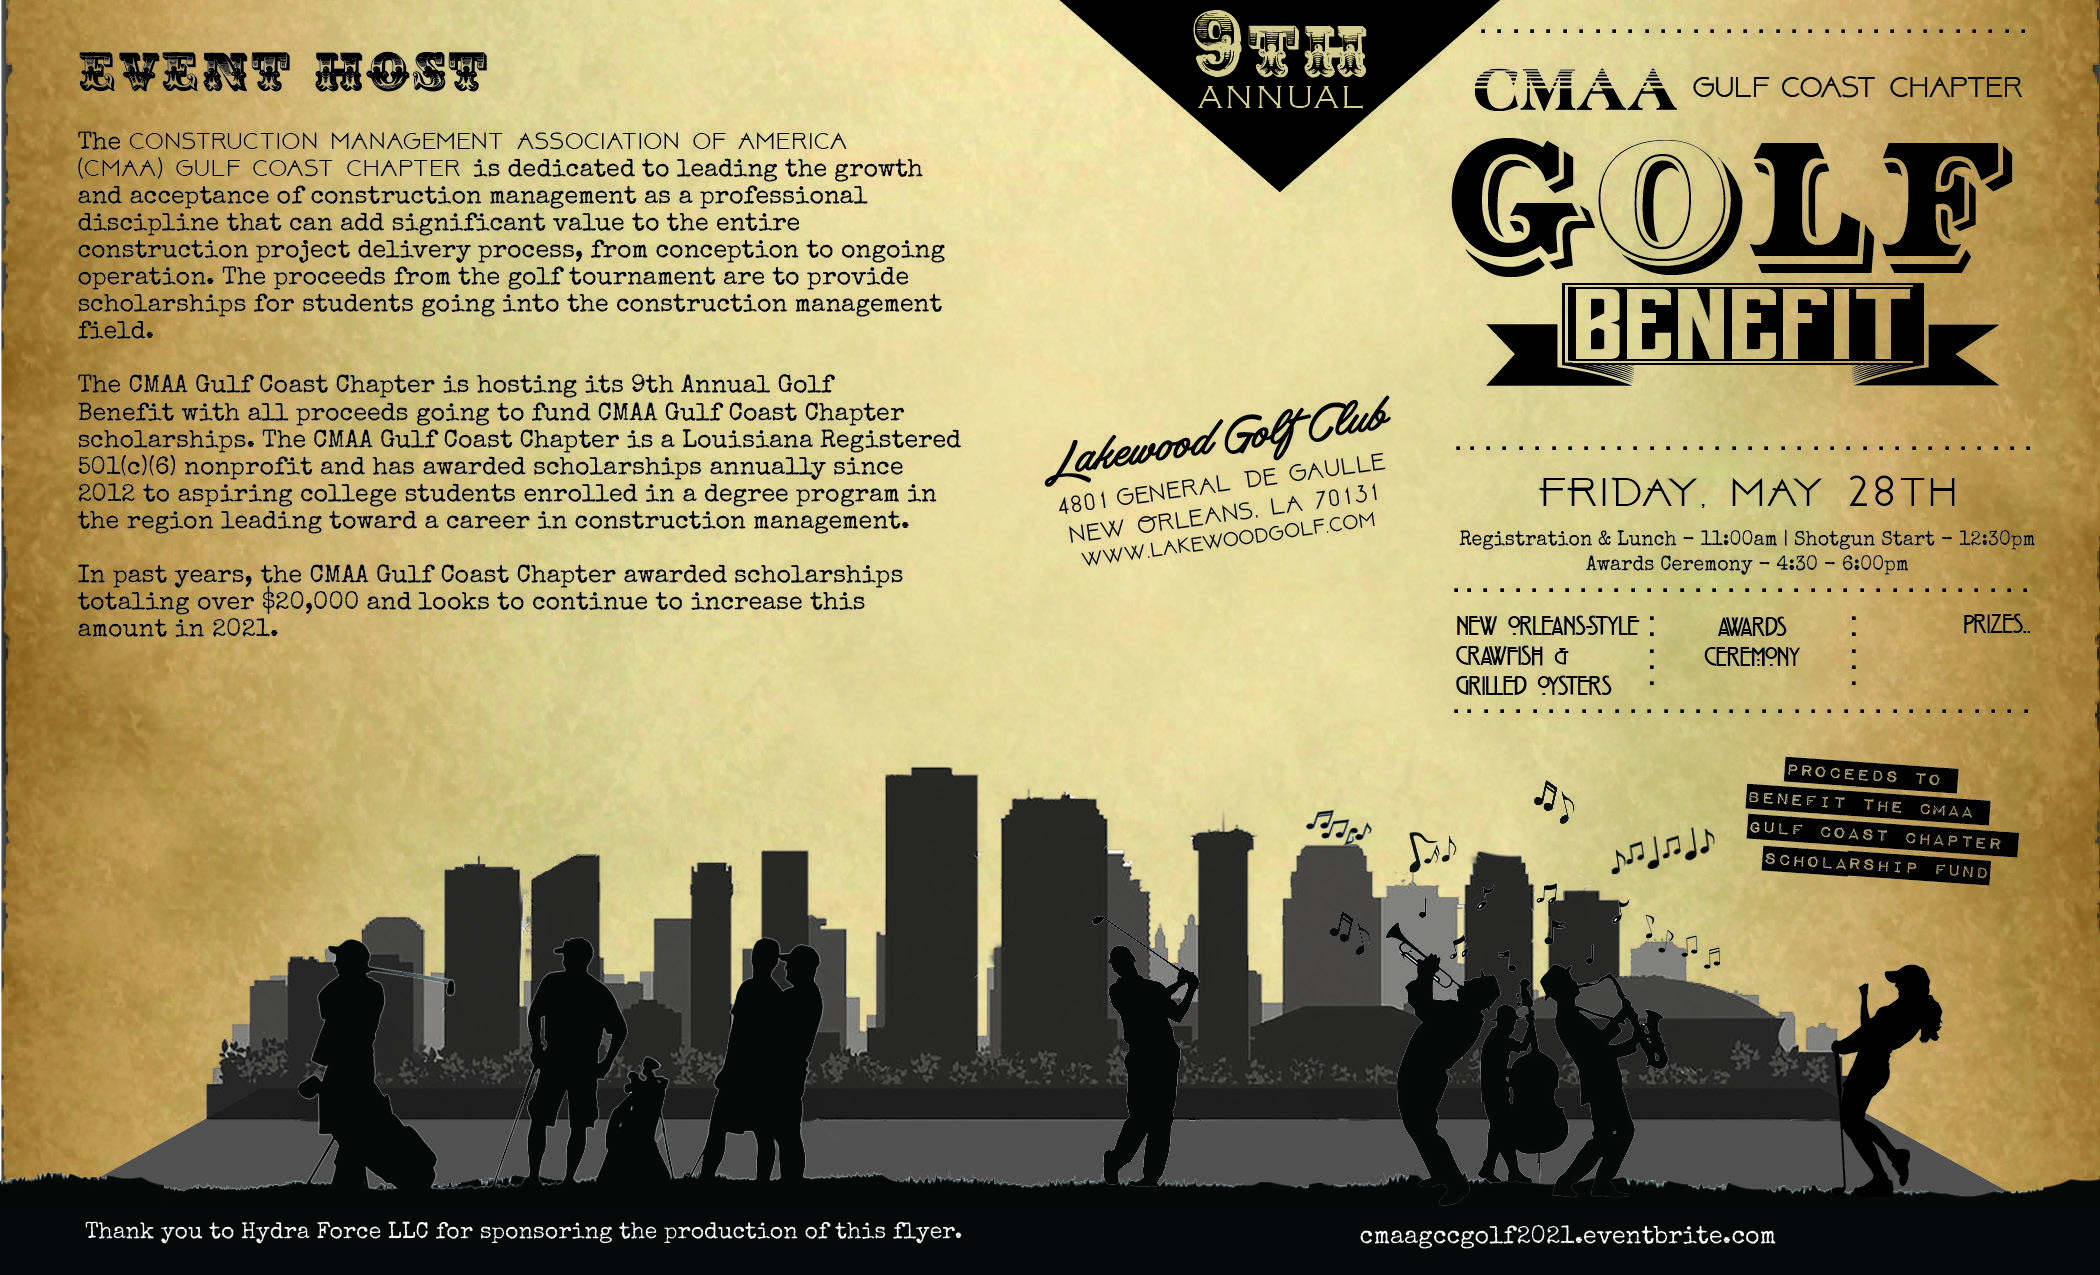 9th Annual Golf Benefit for CMAA Gulf Coast Chapter Scholarships